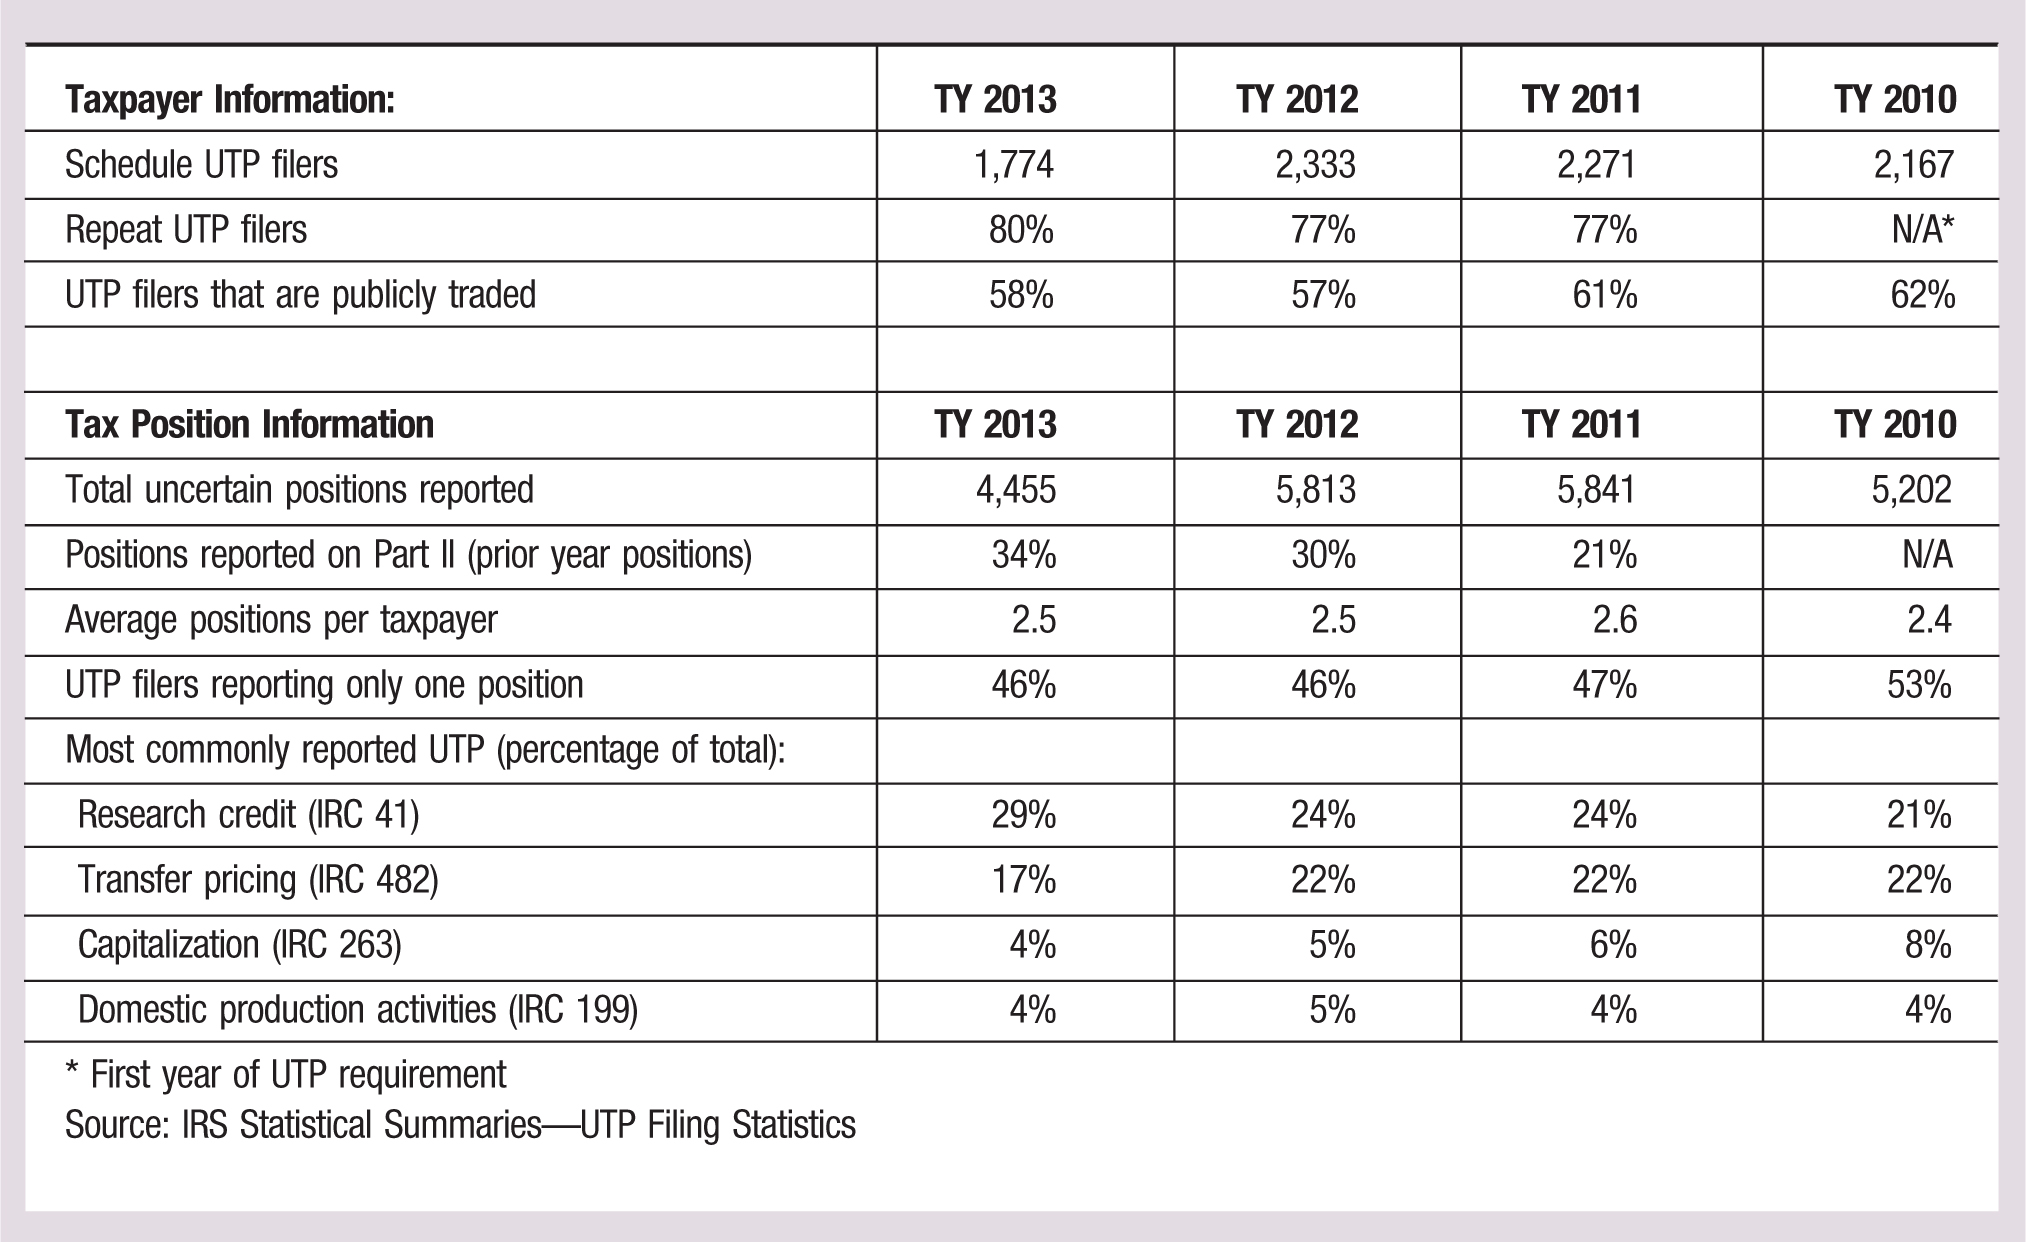 Taxpayer Information:; TY 2013; TY 2012; TY 2011; TY 2010 Schedule UTP filers; 1,774; 2,333; 2,271; 2,167 Repeat UTP filers; 80%; 77%; 77%; N/A* UTP filers that are publicly traded; 58%; 57%; 61%; 62% Tax Position Information; TY 2013; TY 2012; TY 2011; TY 2010 Total uncertain positions reported; 4,455; 5,813; 5,841; 5,202 Positions reported on Part II (prior year positions); 34%; 30%; 21%; N/A Average positions per taxpayer; 2.5; 2.5; 2.6; 2.4 UTP filers reporting only one position; 46%; 46%; 47%; 53% Most commonly reported UTP (percentage of total): Research credit (IRC 41); 29%; 24%; 24%; 21% Transfer pricing (IRC 482); 17%; 22%; 22%; 22% Capitalization (IRC 263); 4%; 5%; 6%; 8% Domestic production activities (IRC 199); 4%; 5%; 4%; 4% * First year of UTP requirement Source: IRS Statistical Summaries—UTP Filing Statistics